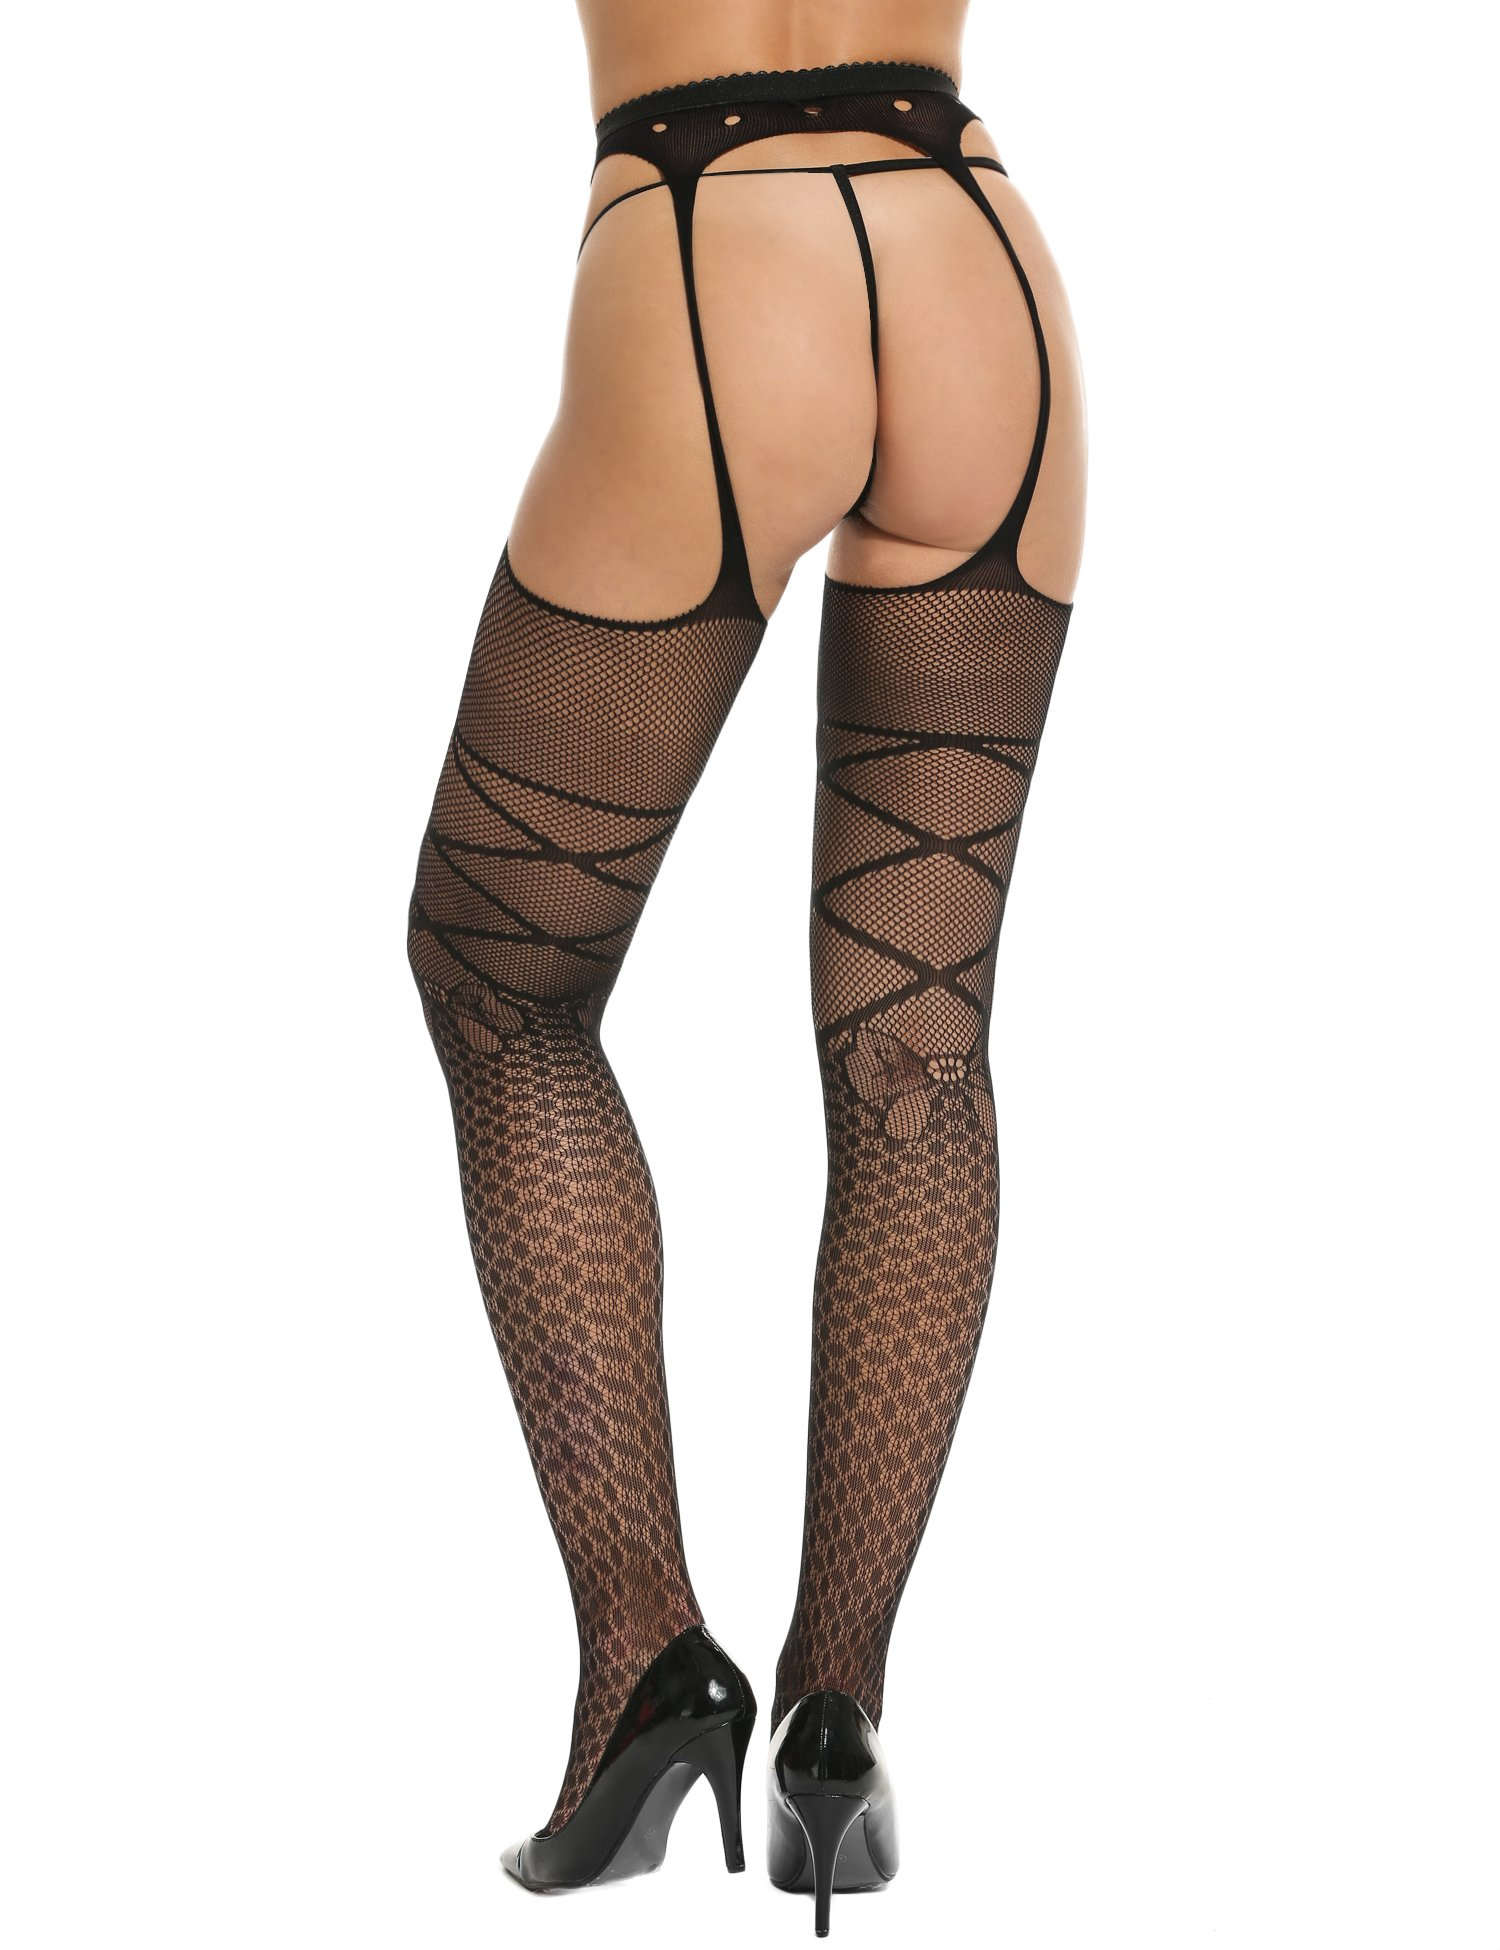 Clearance Sale Women Sexy Lingerie Stockings Tights Pantyhose Mesh Hollow Floral Lace Stretchy with Adjustable Garter Belt